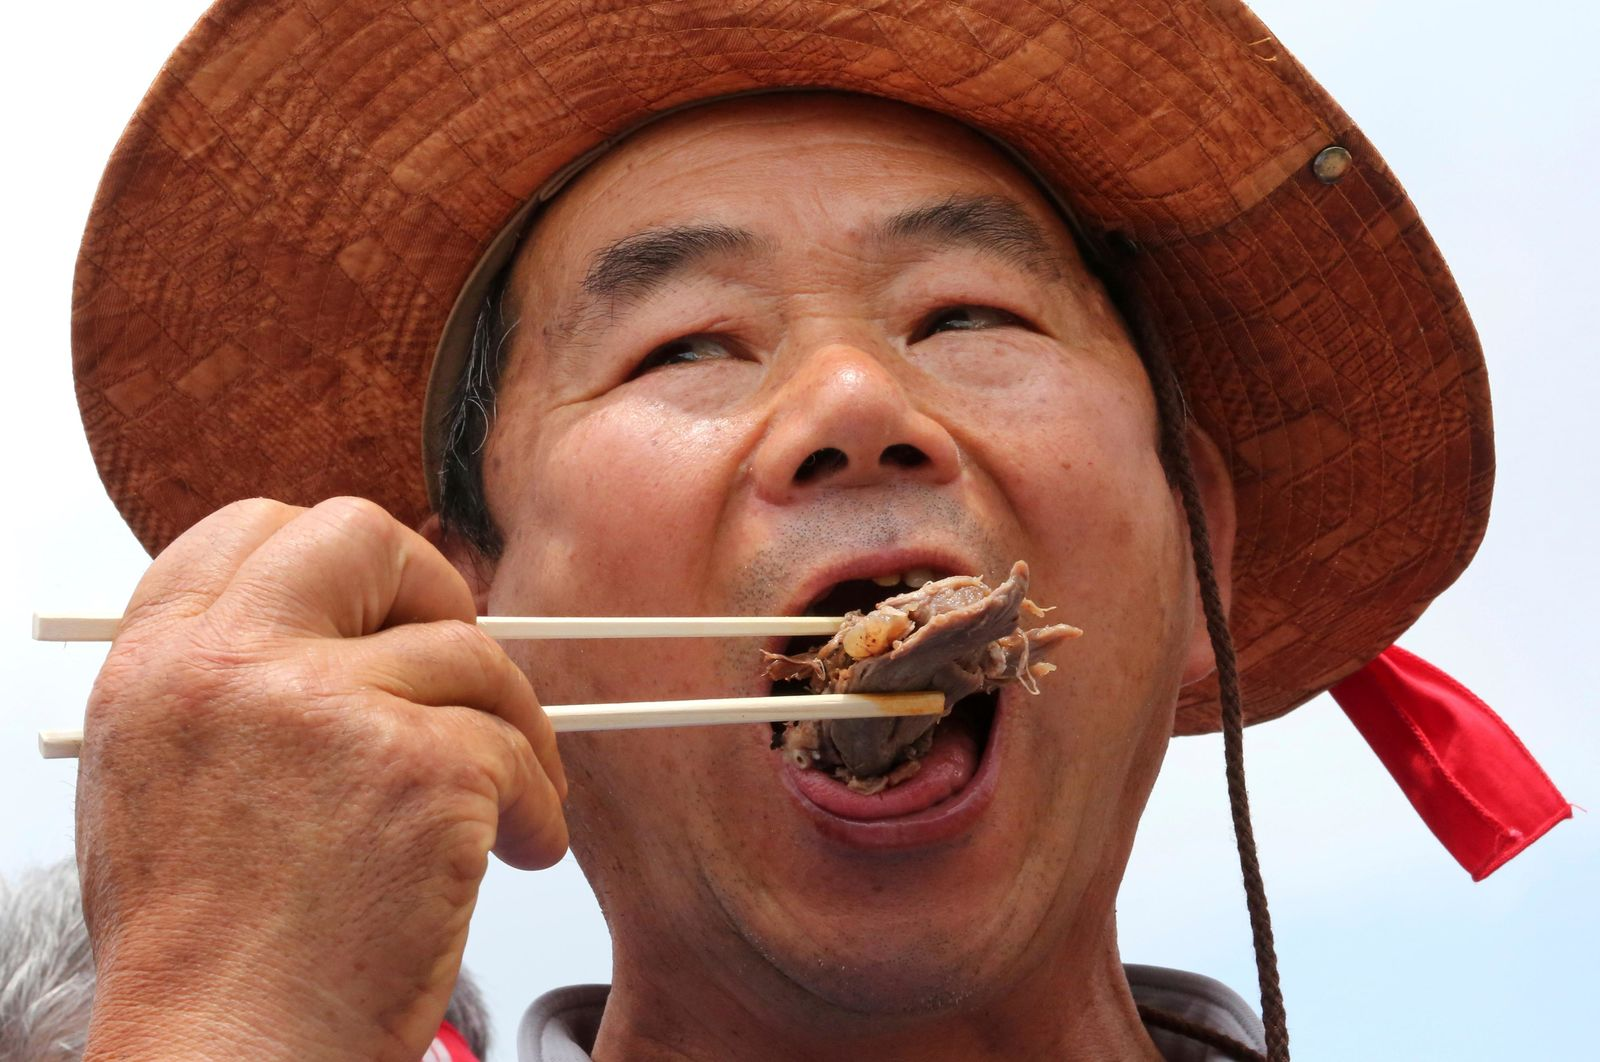 A member of the Korean Dog Meat Association eats dog meat during a rally to support eating the meat in front of the National Assembly in Seoul, South Korea, Friday, July 12, 2019. July 12 is the day South Koreans eat healthy foods such as dog meat in the belief it would help them survive heat during summer. (AP Photo/Ahn Young-joon)